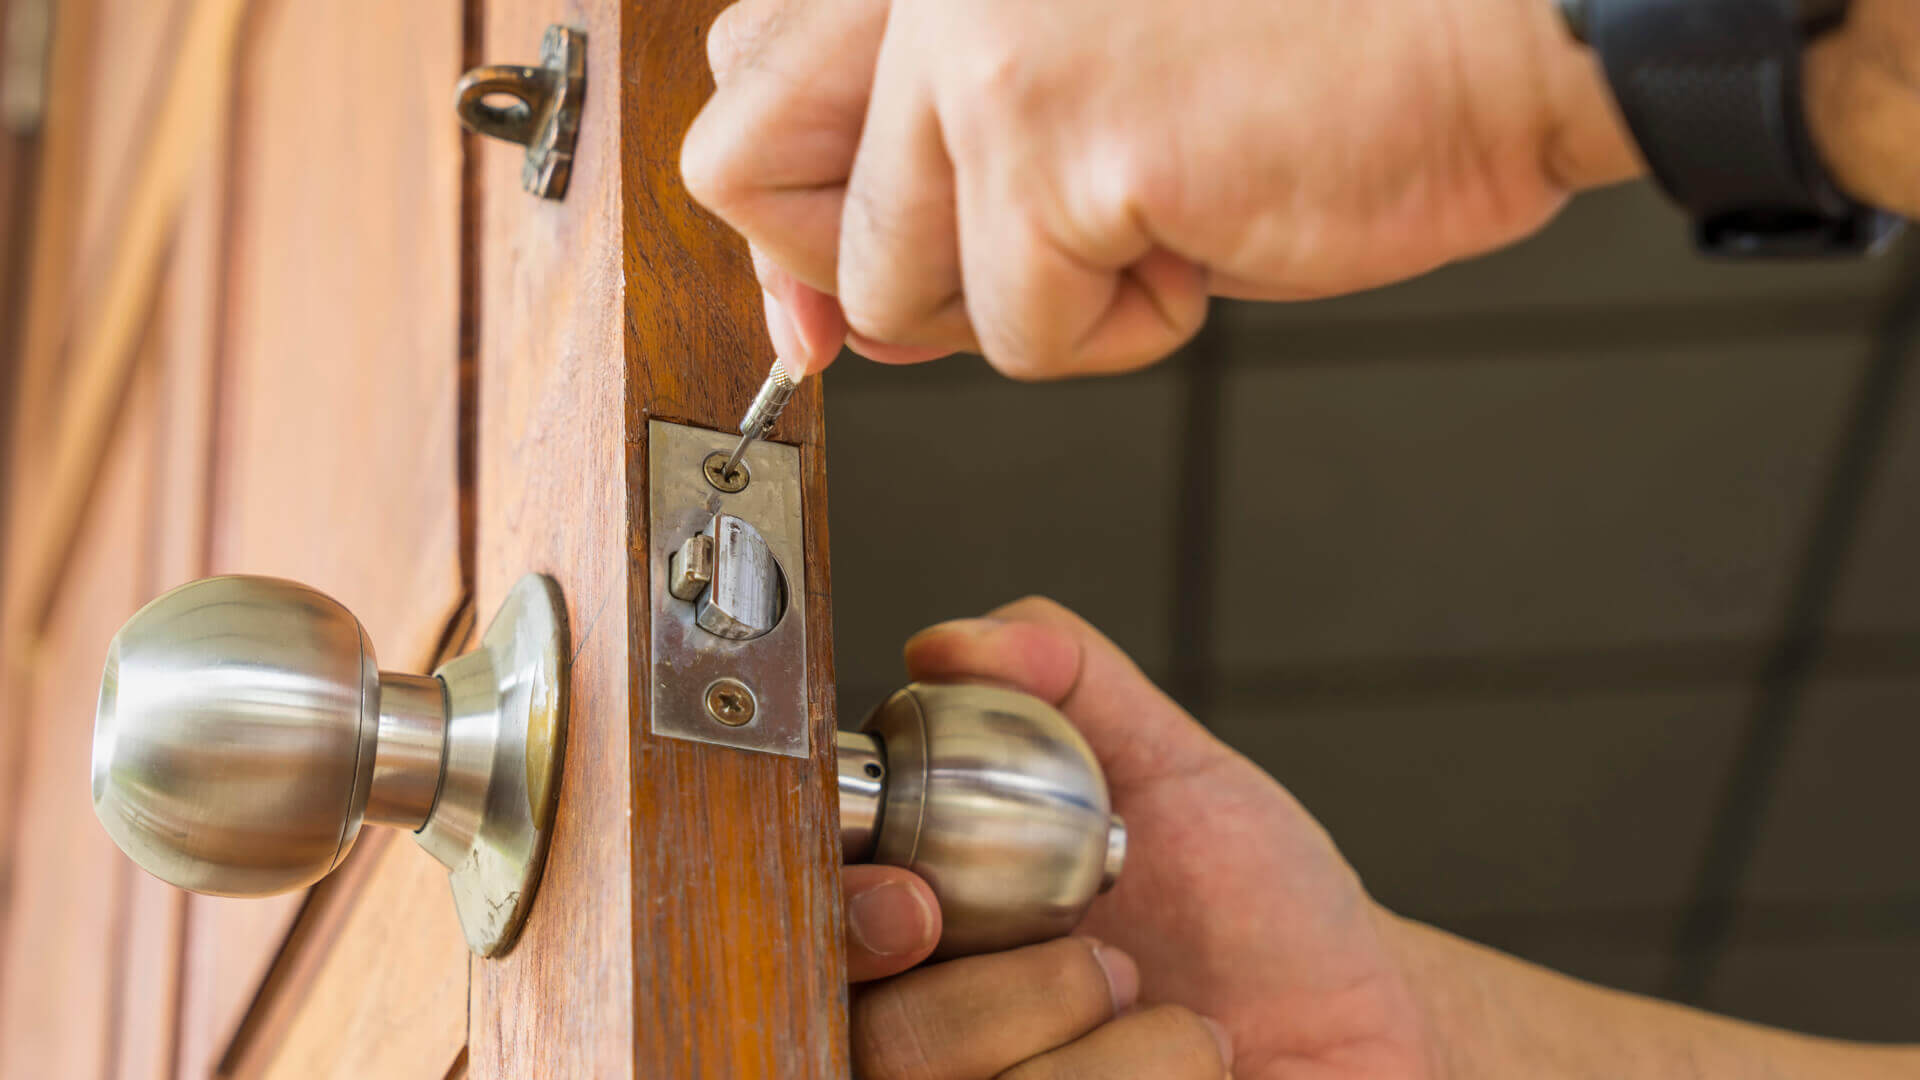 Locksmith making a repair to a residential lock in Tampa, FL.